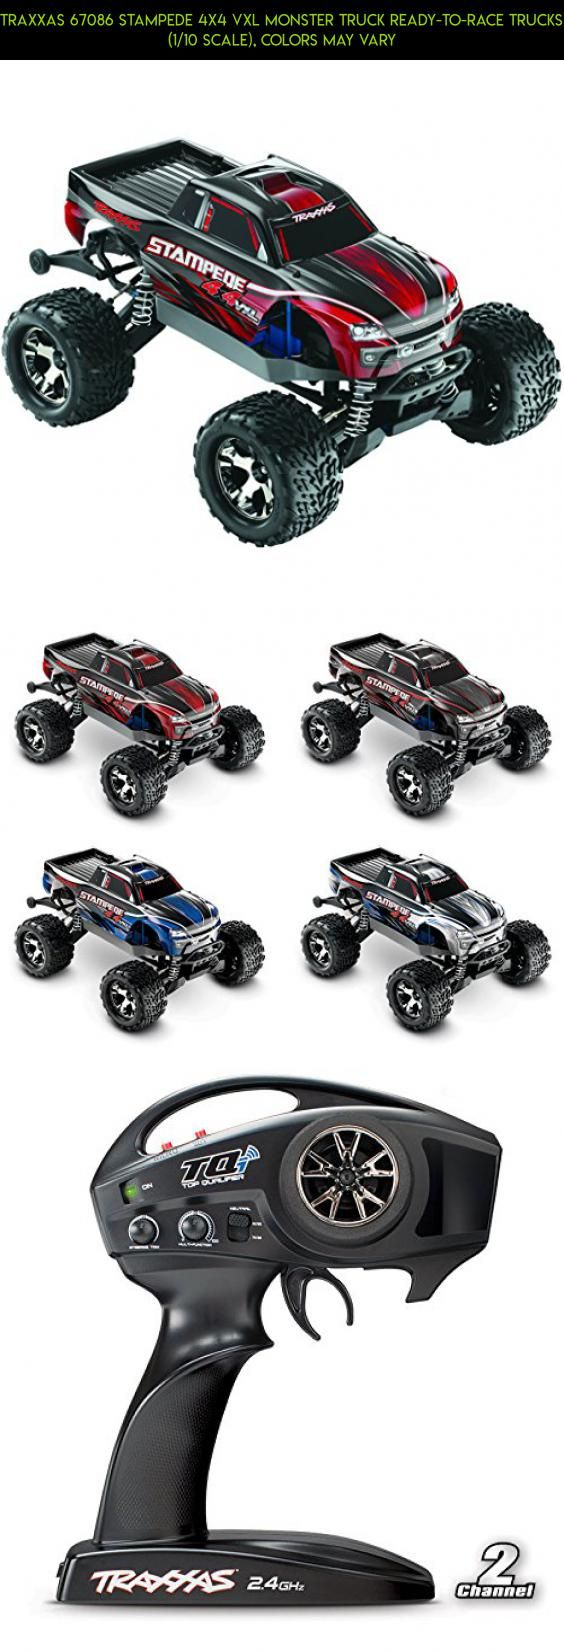 Traxxas 67086 Stampede 4X4 VXL Monster Truck Ready-To-Race Trucks (1/10 Scale), Colors May Vary #camera #wheels #wheelie #gadgets #drone #traxxas #racing #fpv #tech #parts #technology #bar #products #kit #plans #shopping